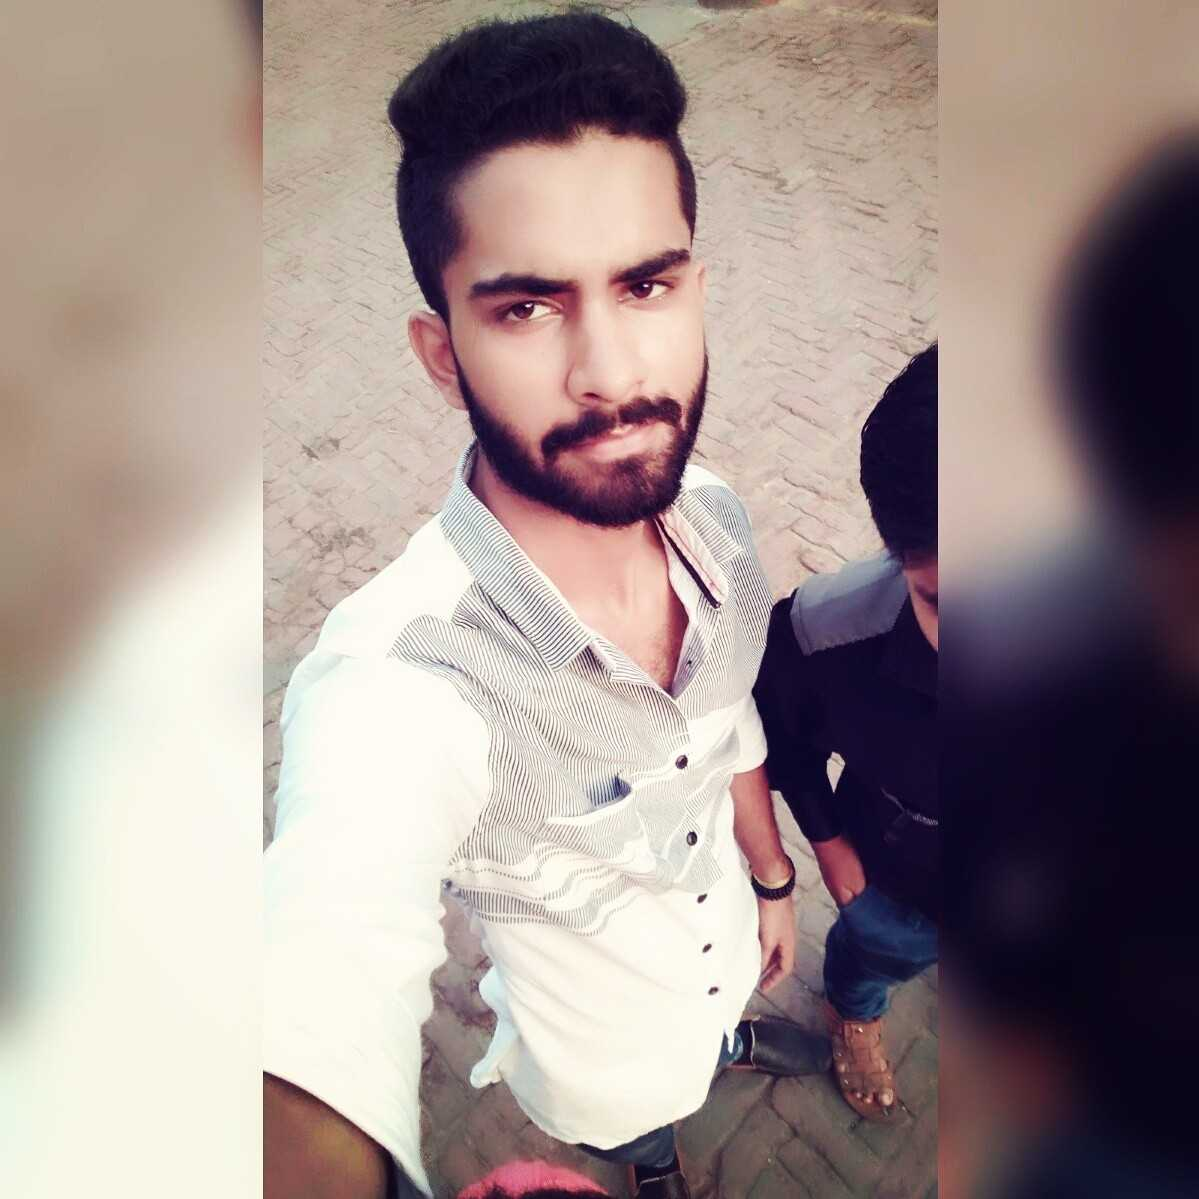 Sarsij Pandey #CSE ENGINEER Simple & Straight forward #kanha_ji_lover #beard_lover nd hn thoda #emotional